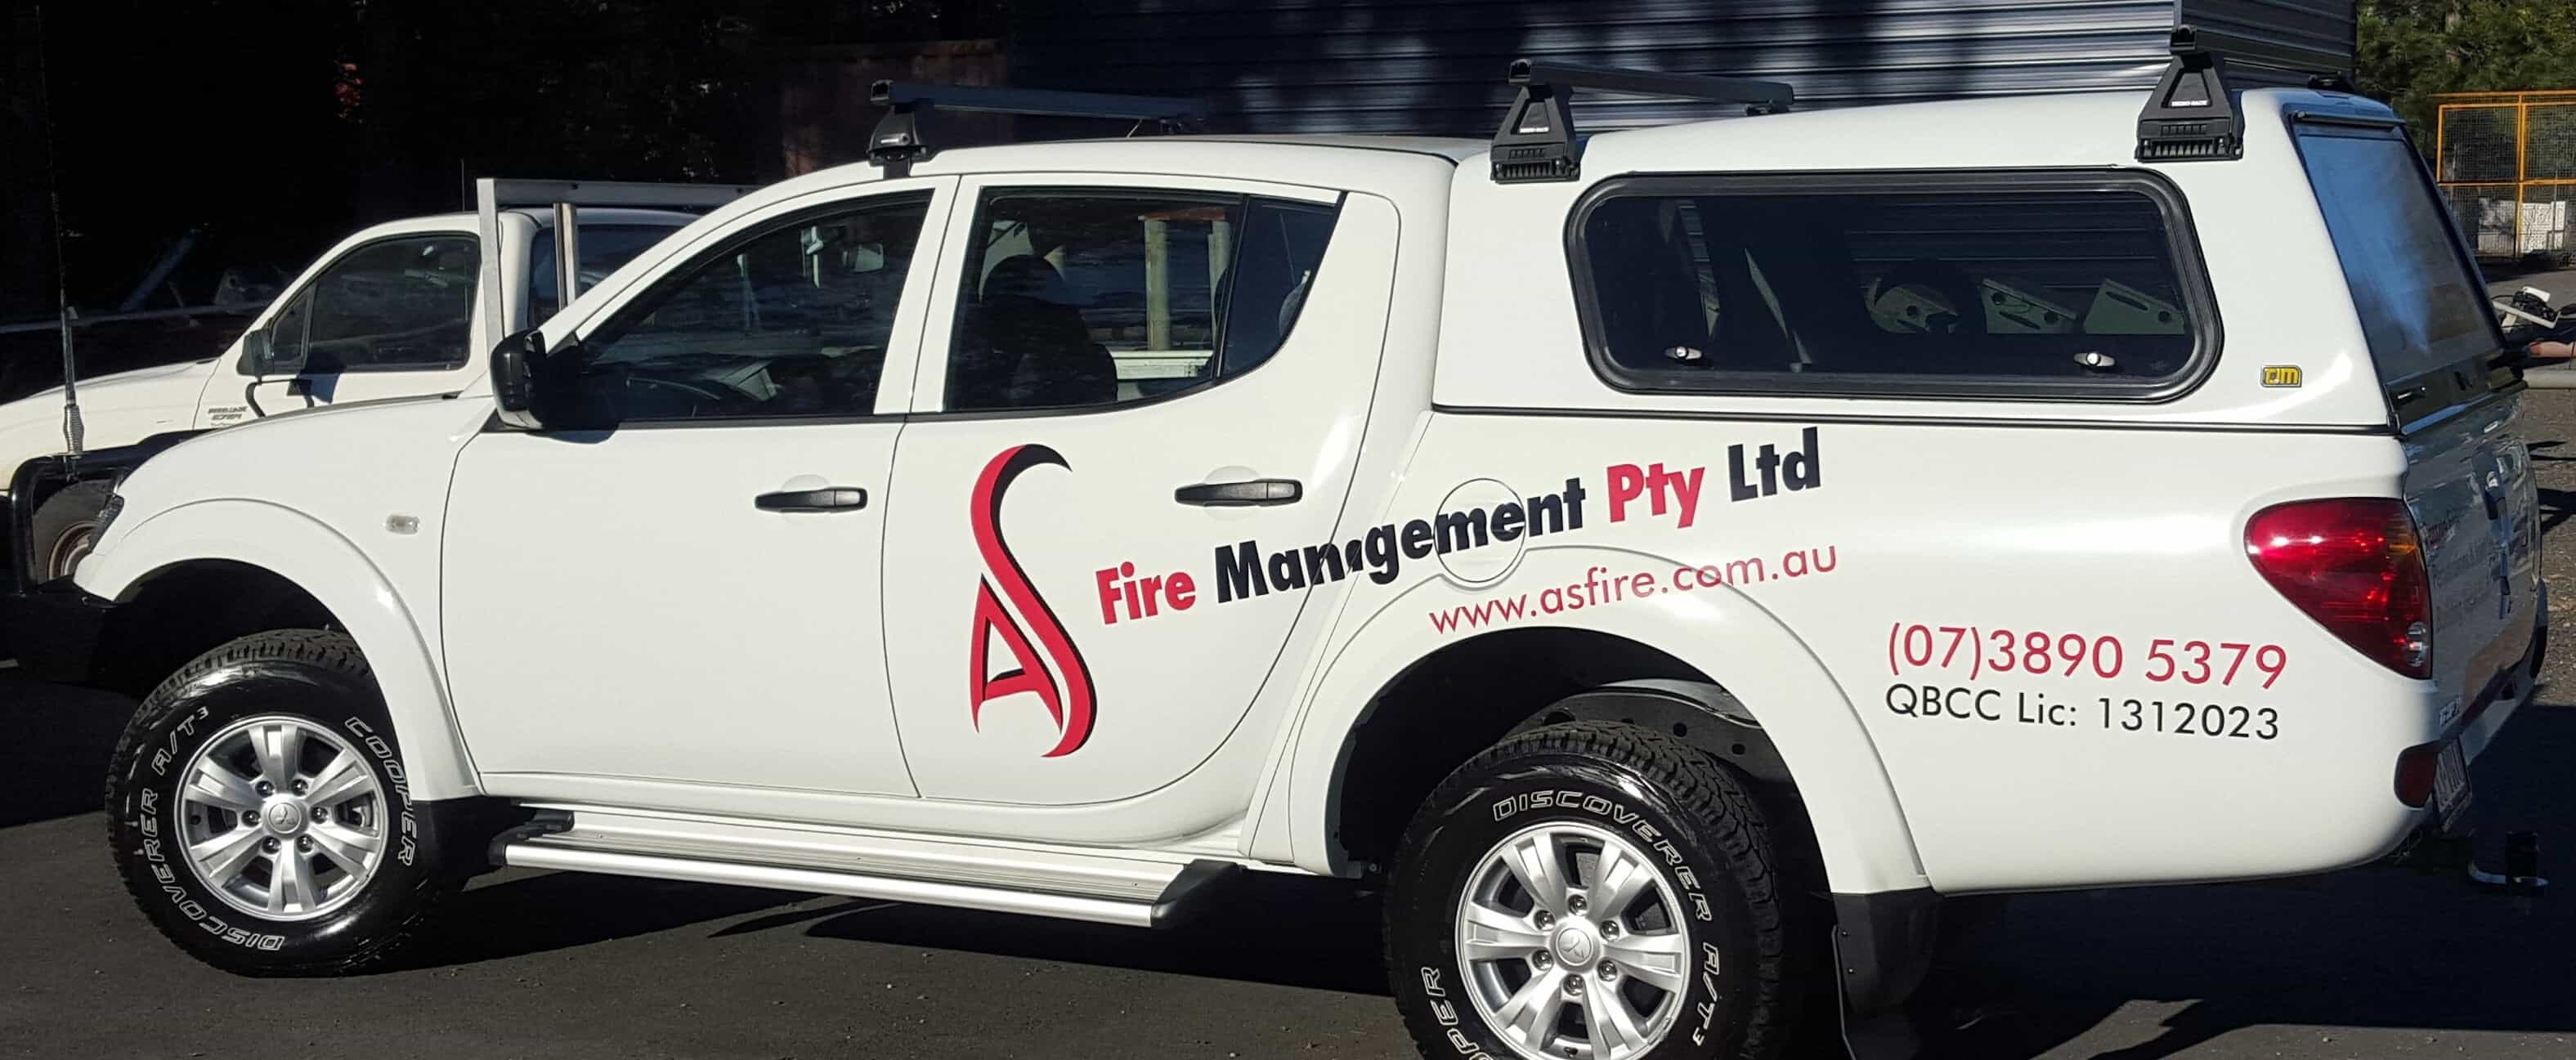 Fire Protection Services Brisbane North